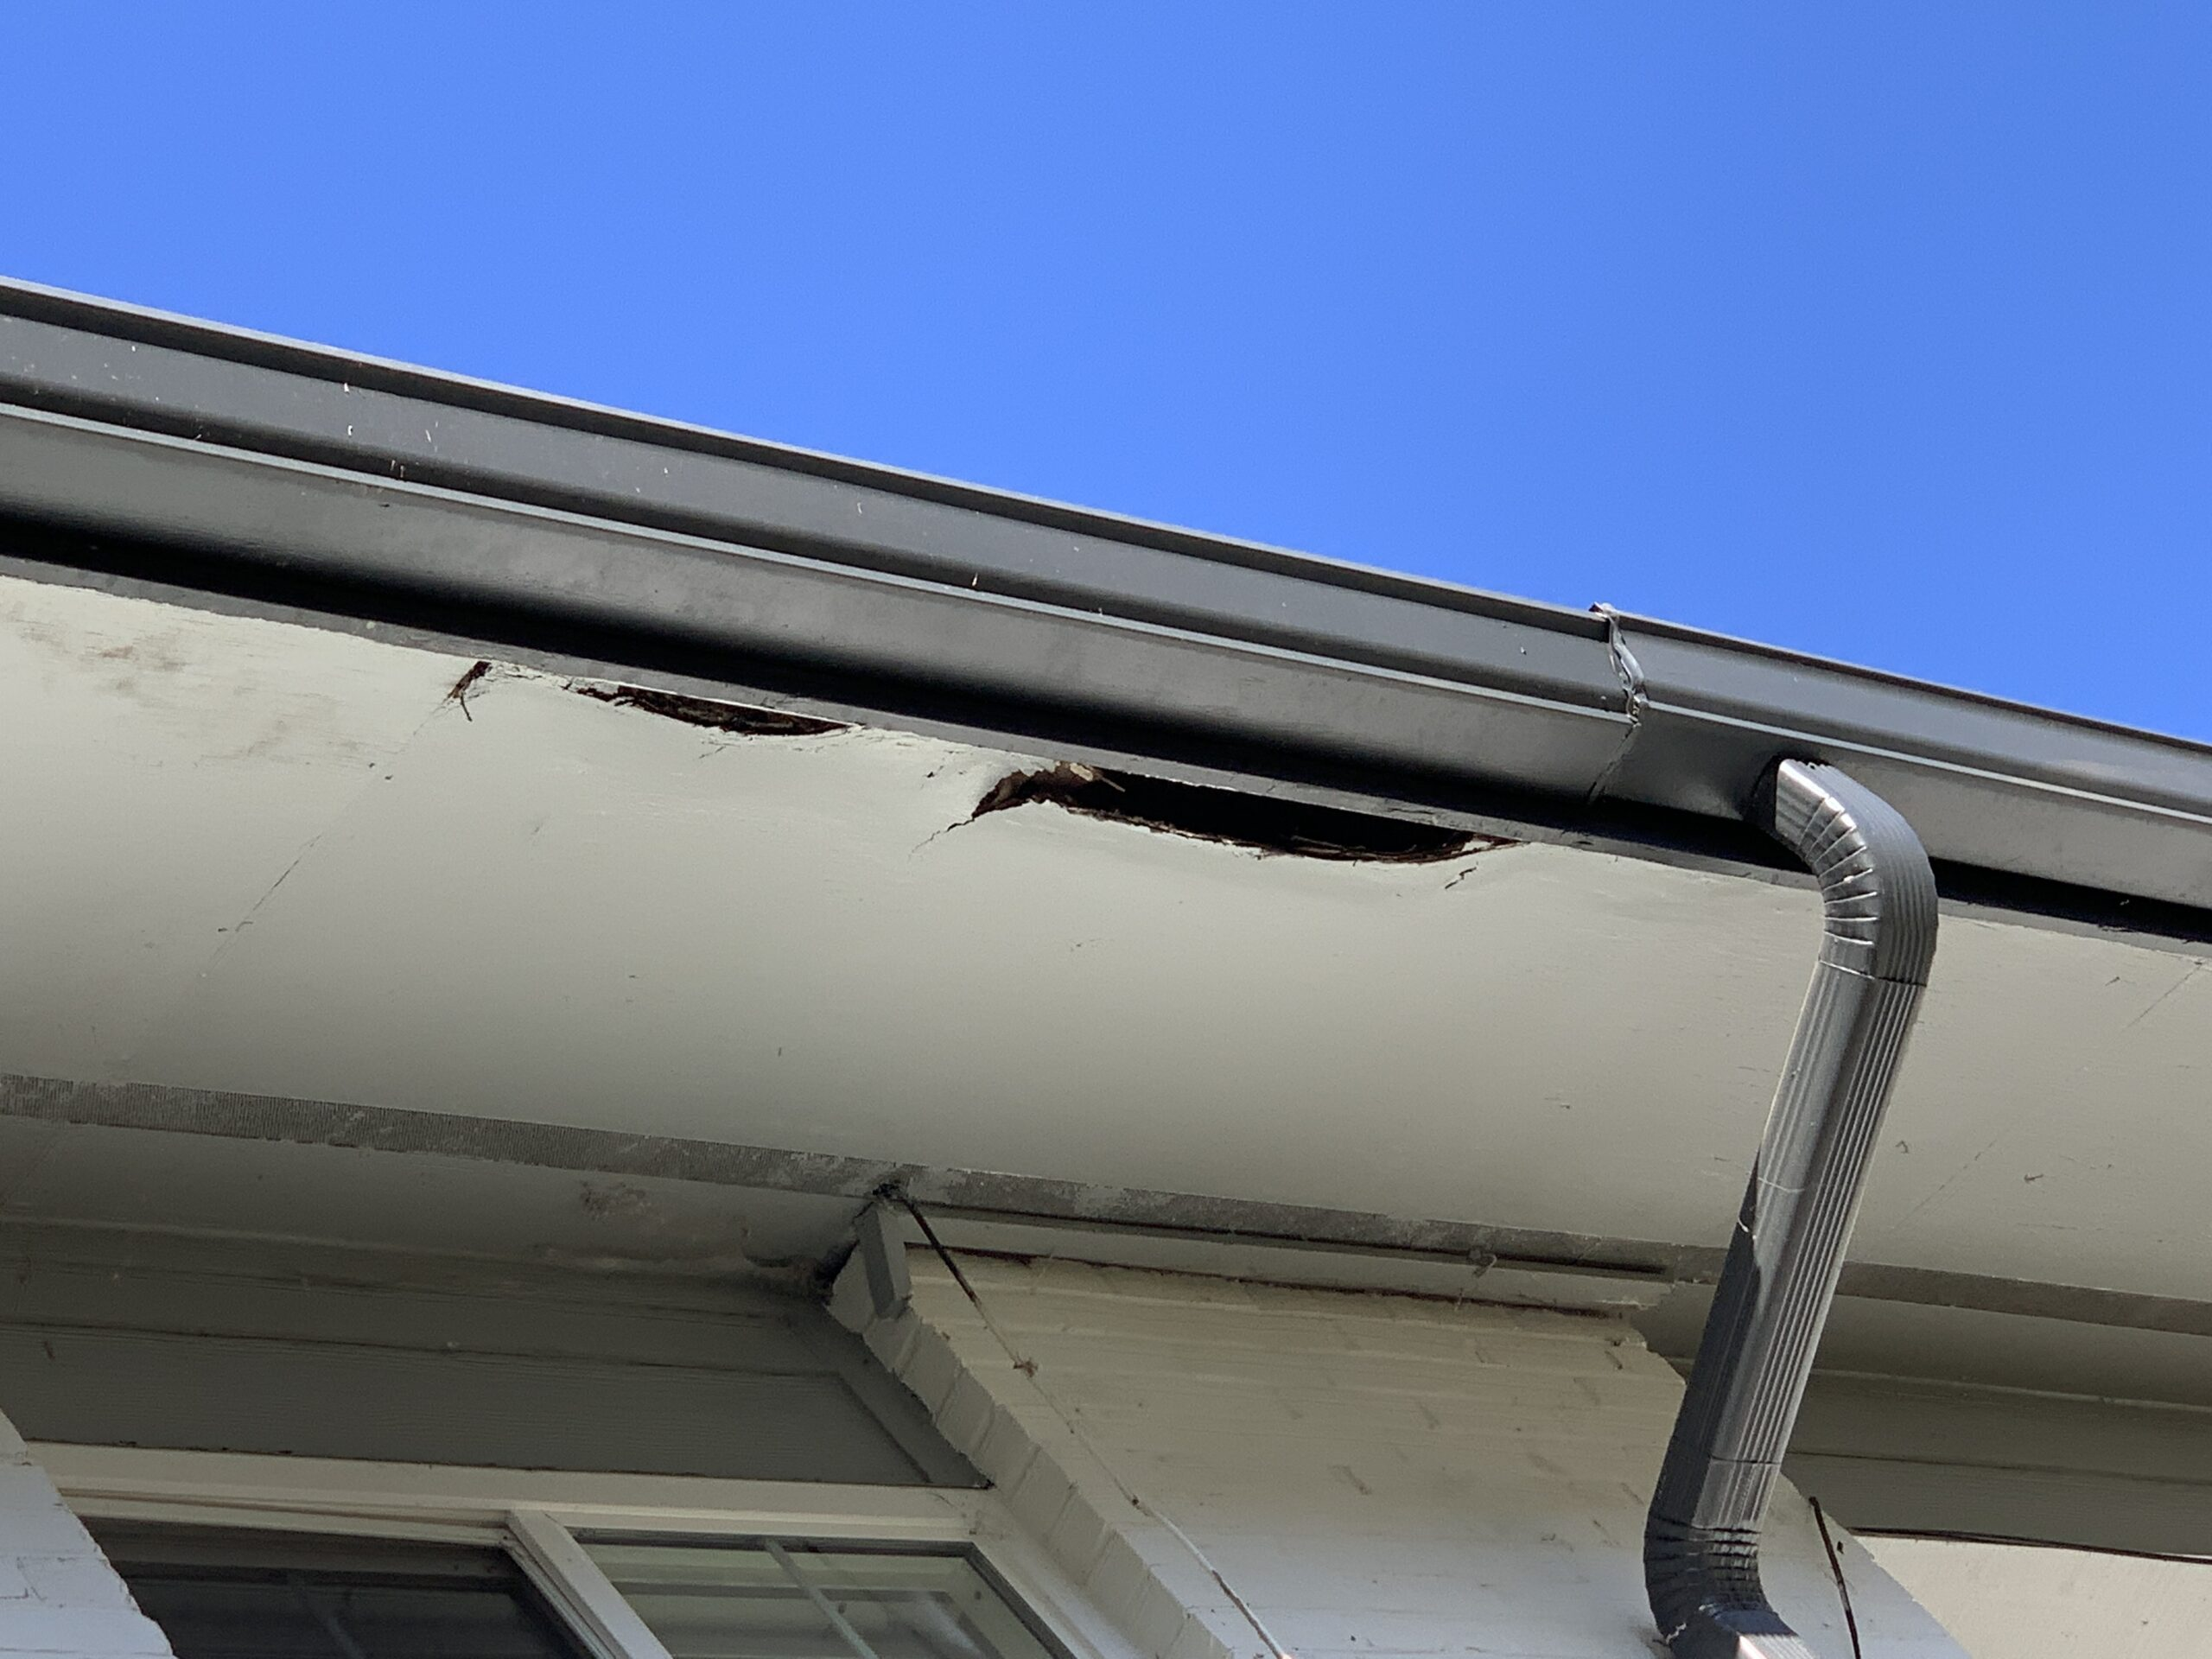 The soffit is rotting and there are visible holes caused by rot from roof leaks and gutter leaks